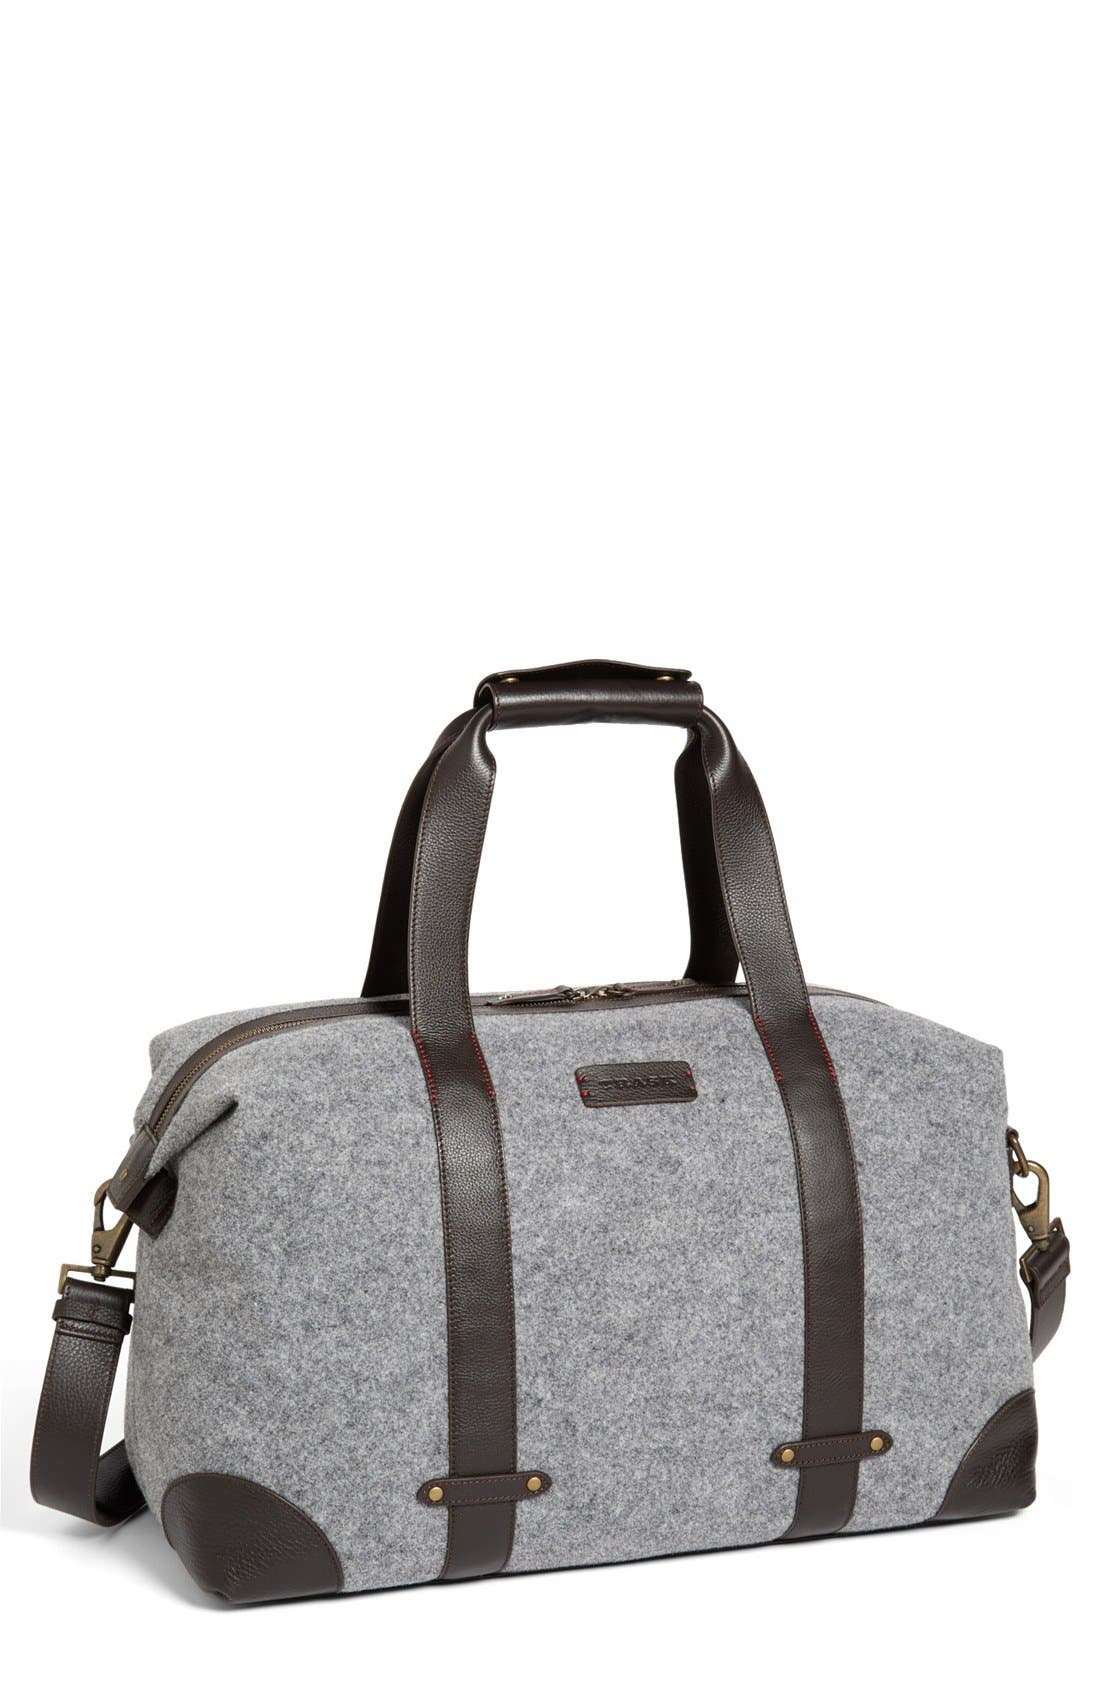 'Jackson' Duffel Bag,                         Main,                         color, 020